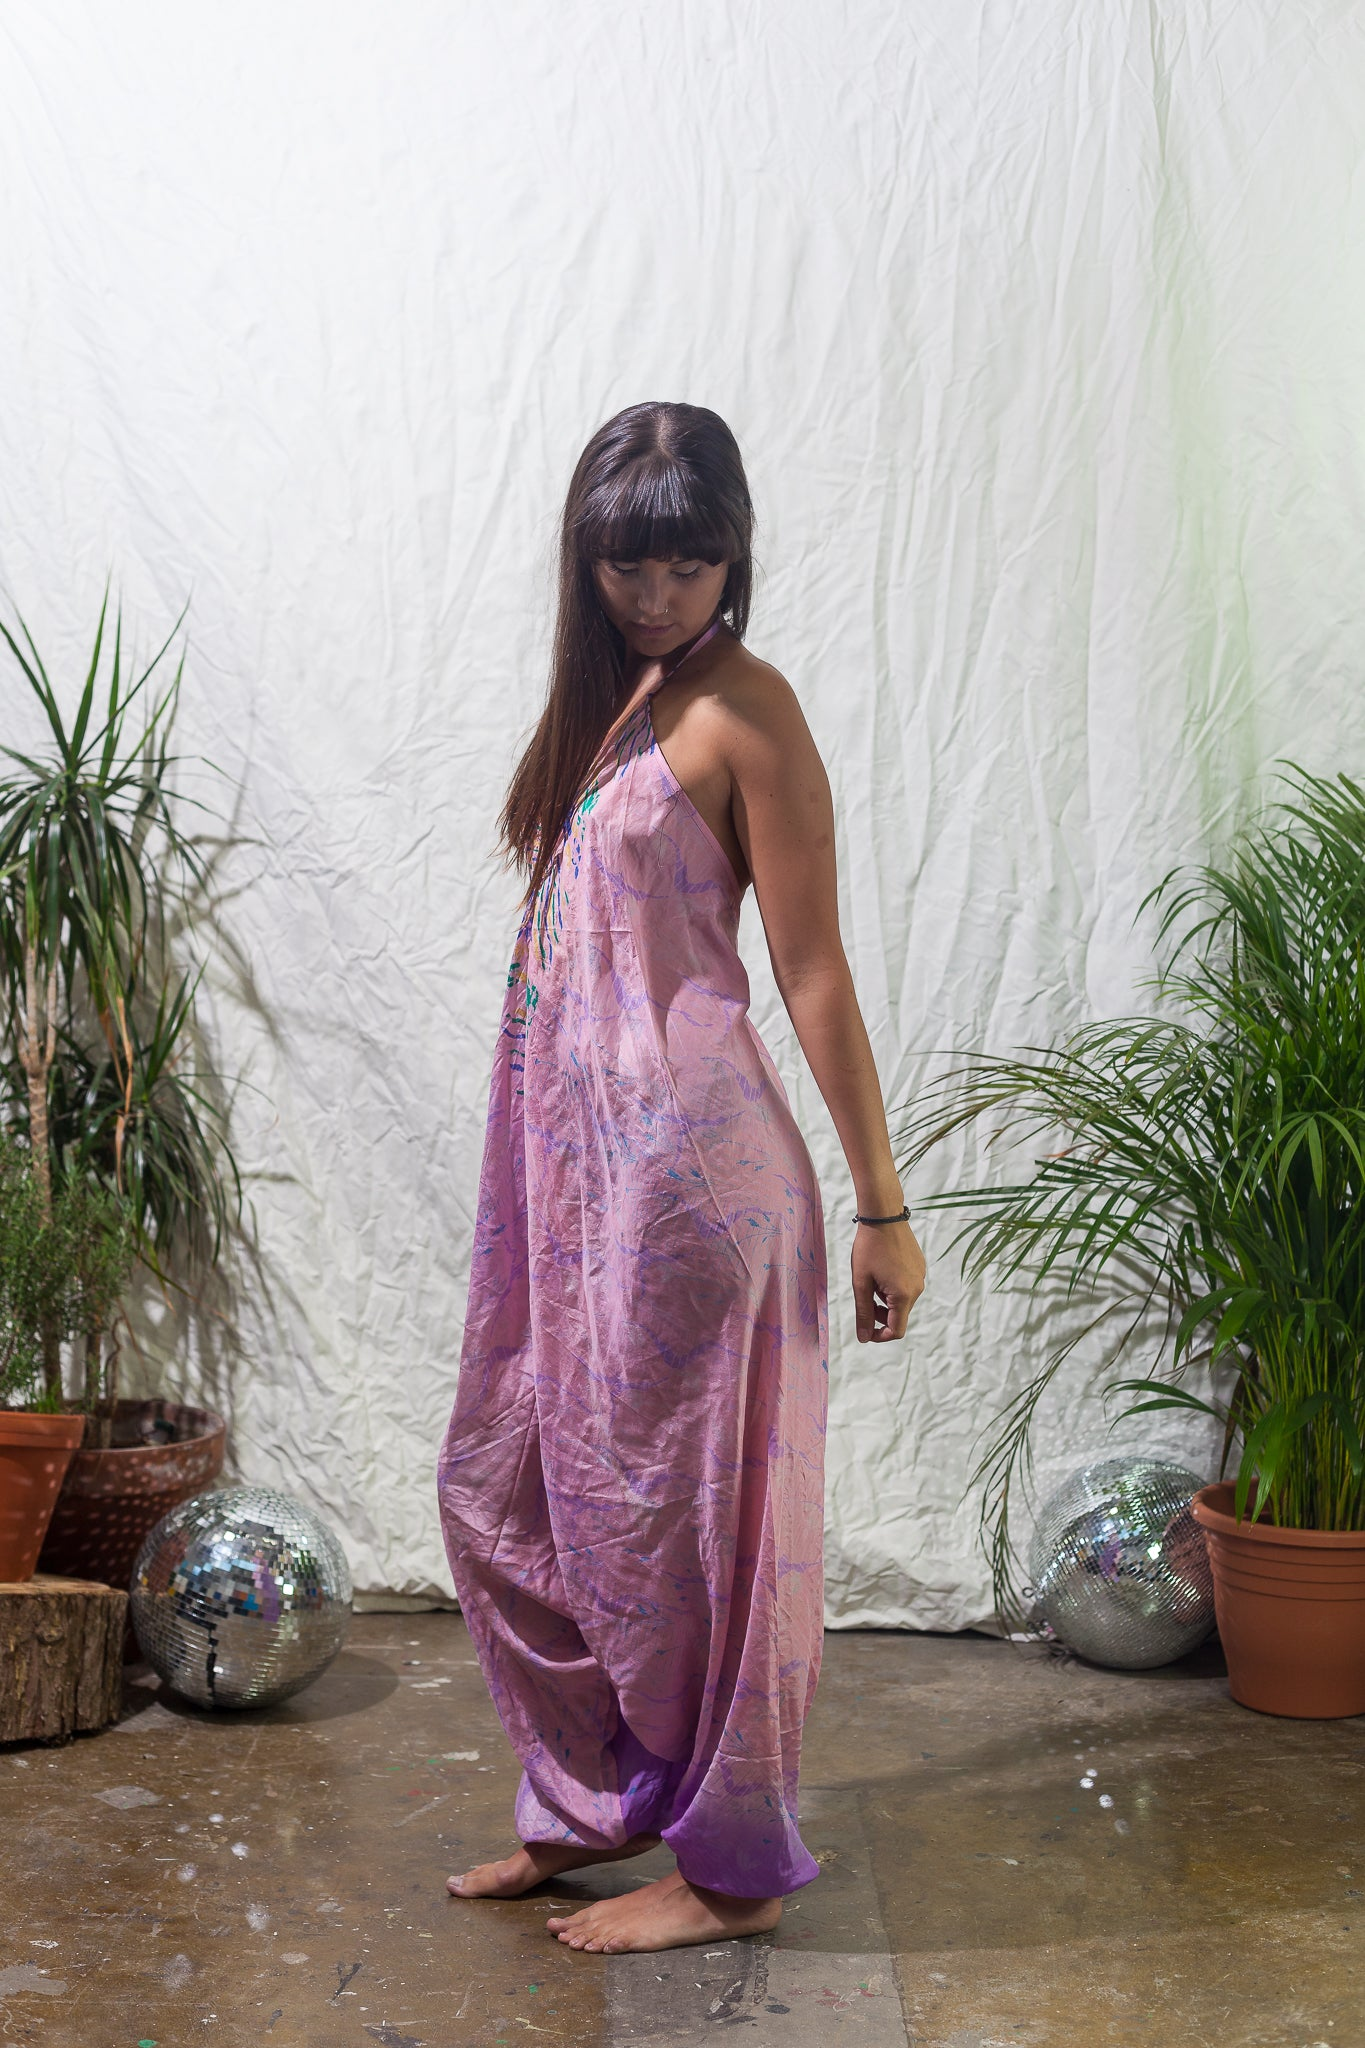 Pastel Dream -  Festival jumpsuit/romper/one-piece made from reclaimed vintage sari .